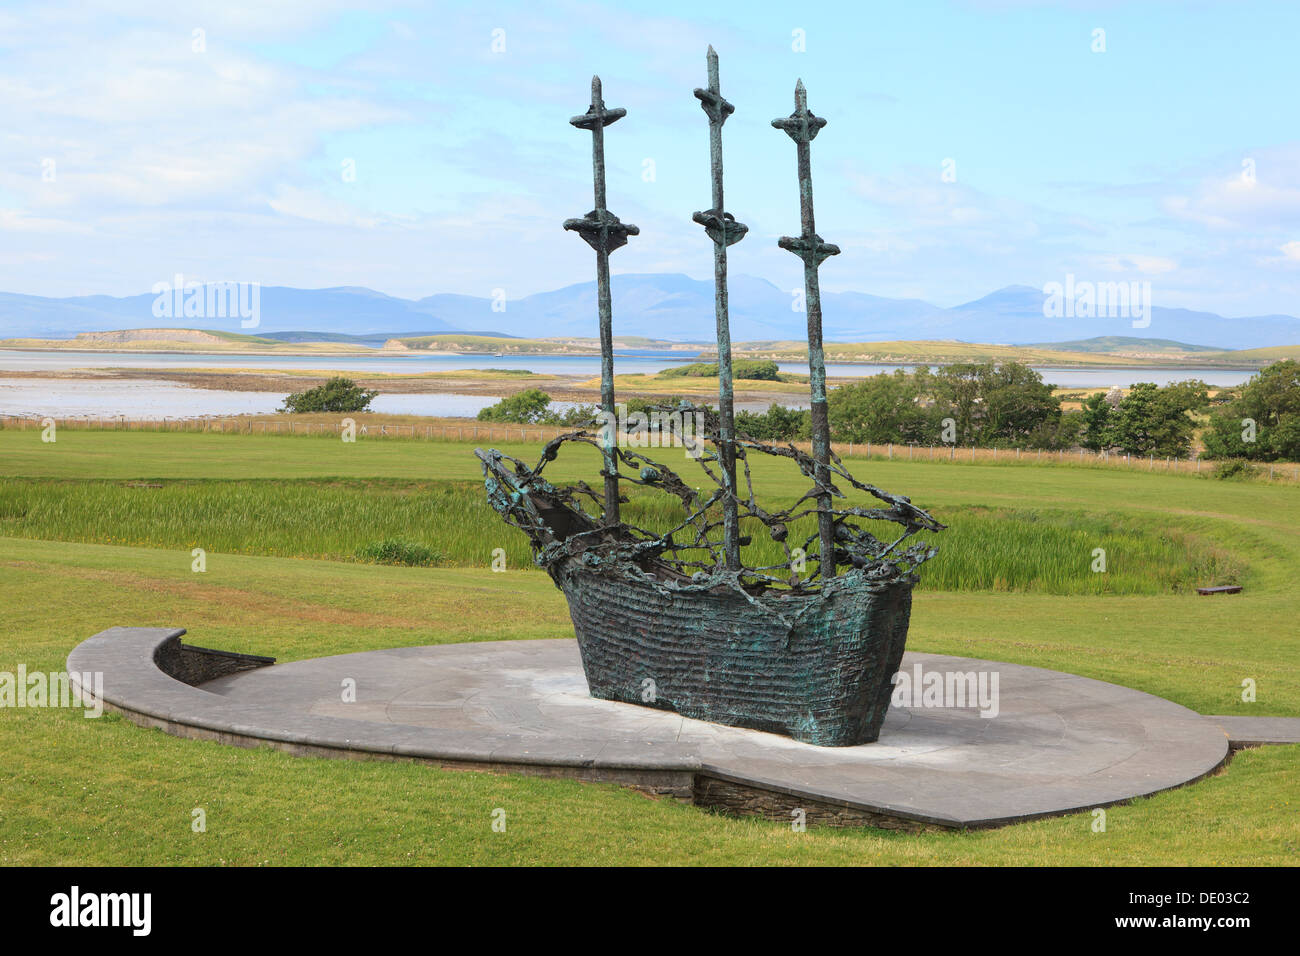 The National Famine Memorial at Murrisk in County Mayo, Ireland Stock Photo